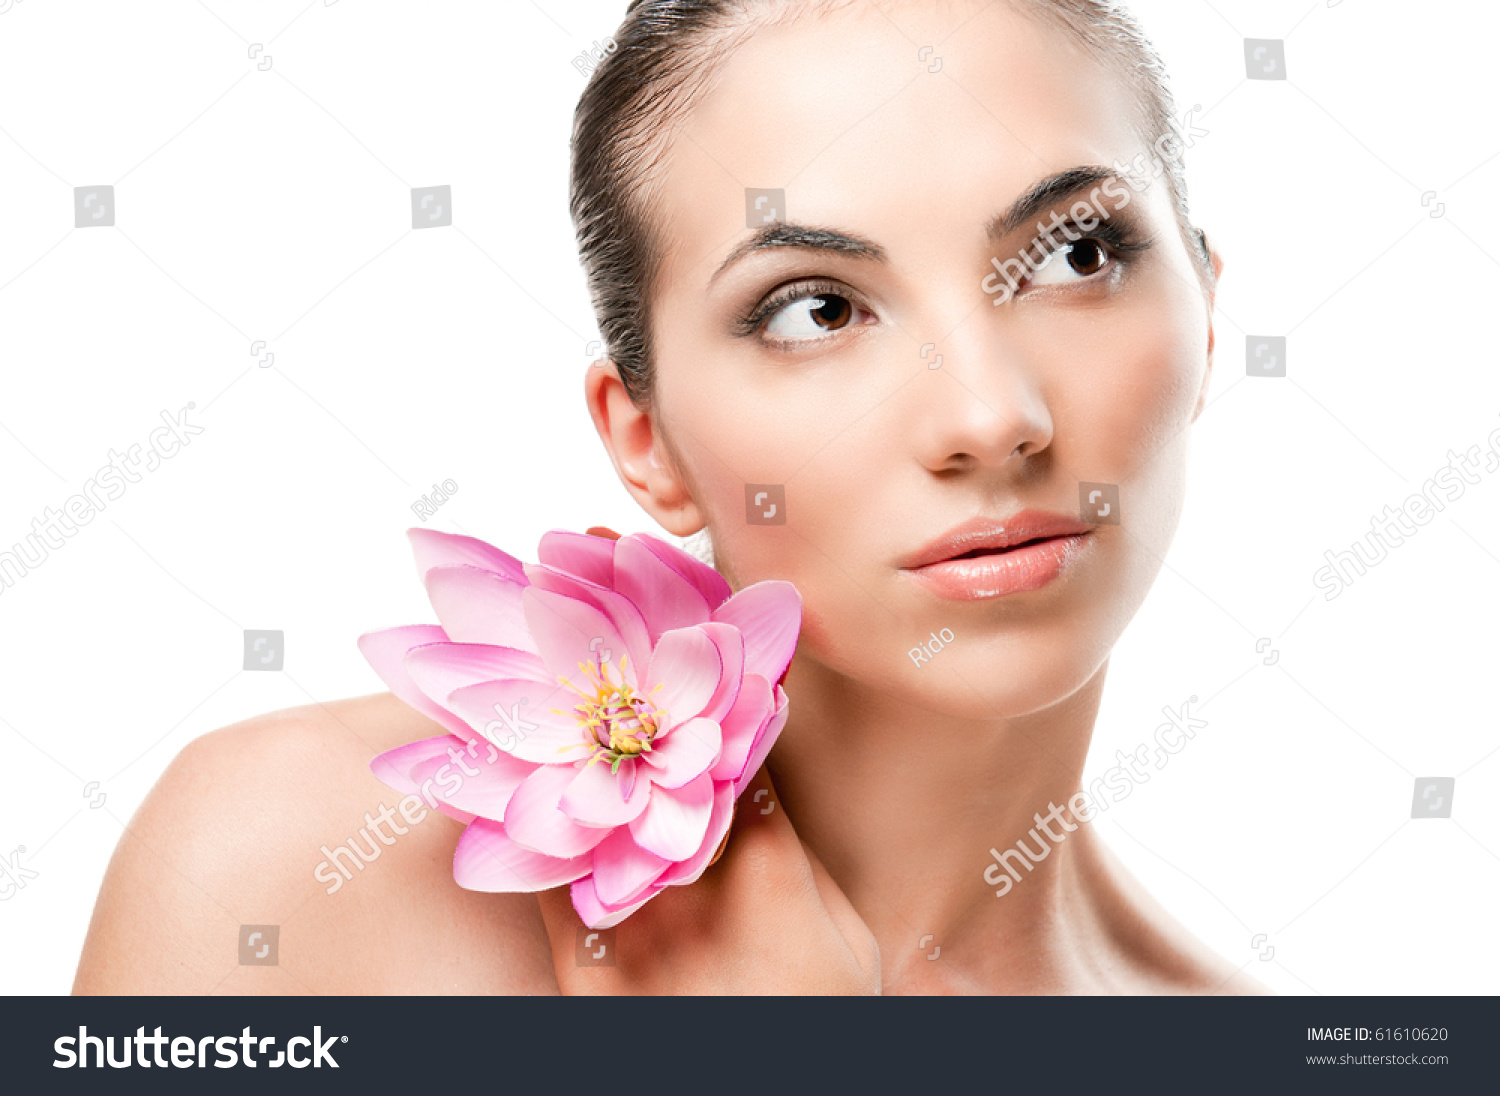 Beautiful young lady lotus flower looking stock photo royalty free beautiful young lady with lotus flower looking up isolated on white background professional beauty makeup izmirmasajfo